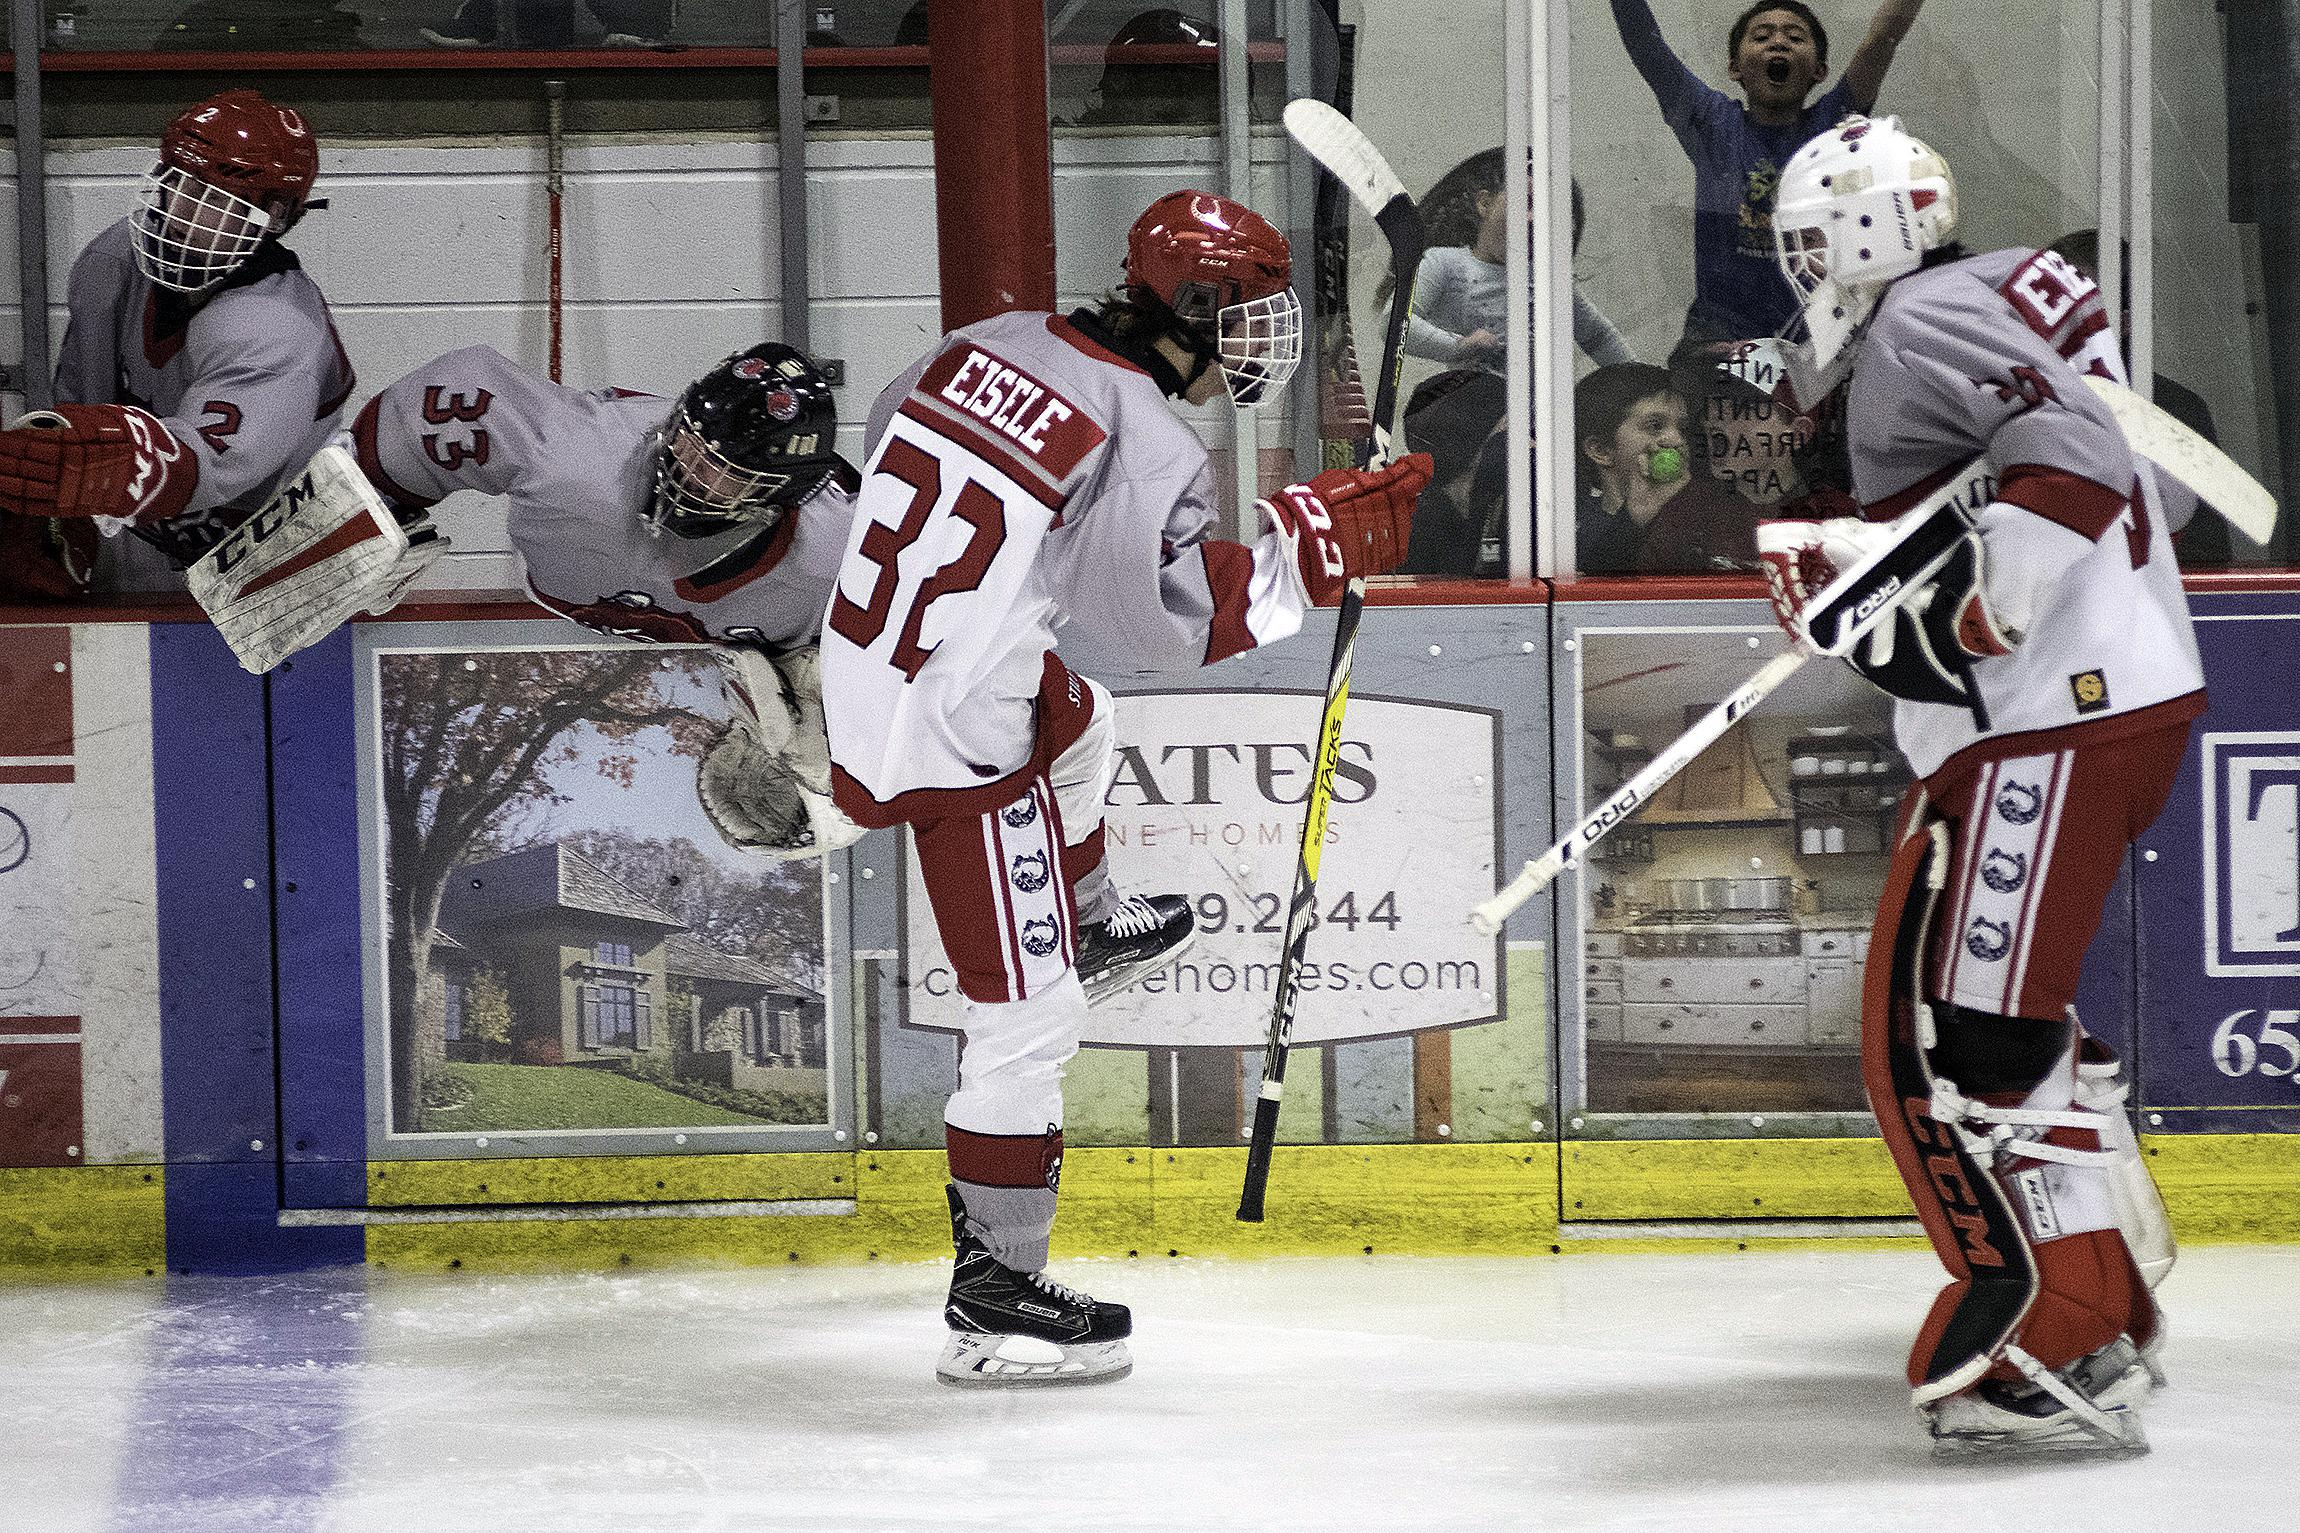 Brothers Adam Eisele (left) and Seth Eisele celebrate after Adam's third-period goal against White Bear Lake. Photo by Spencer St. Dennis (www.spencerstdennisphotography.squarespace.com)